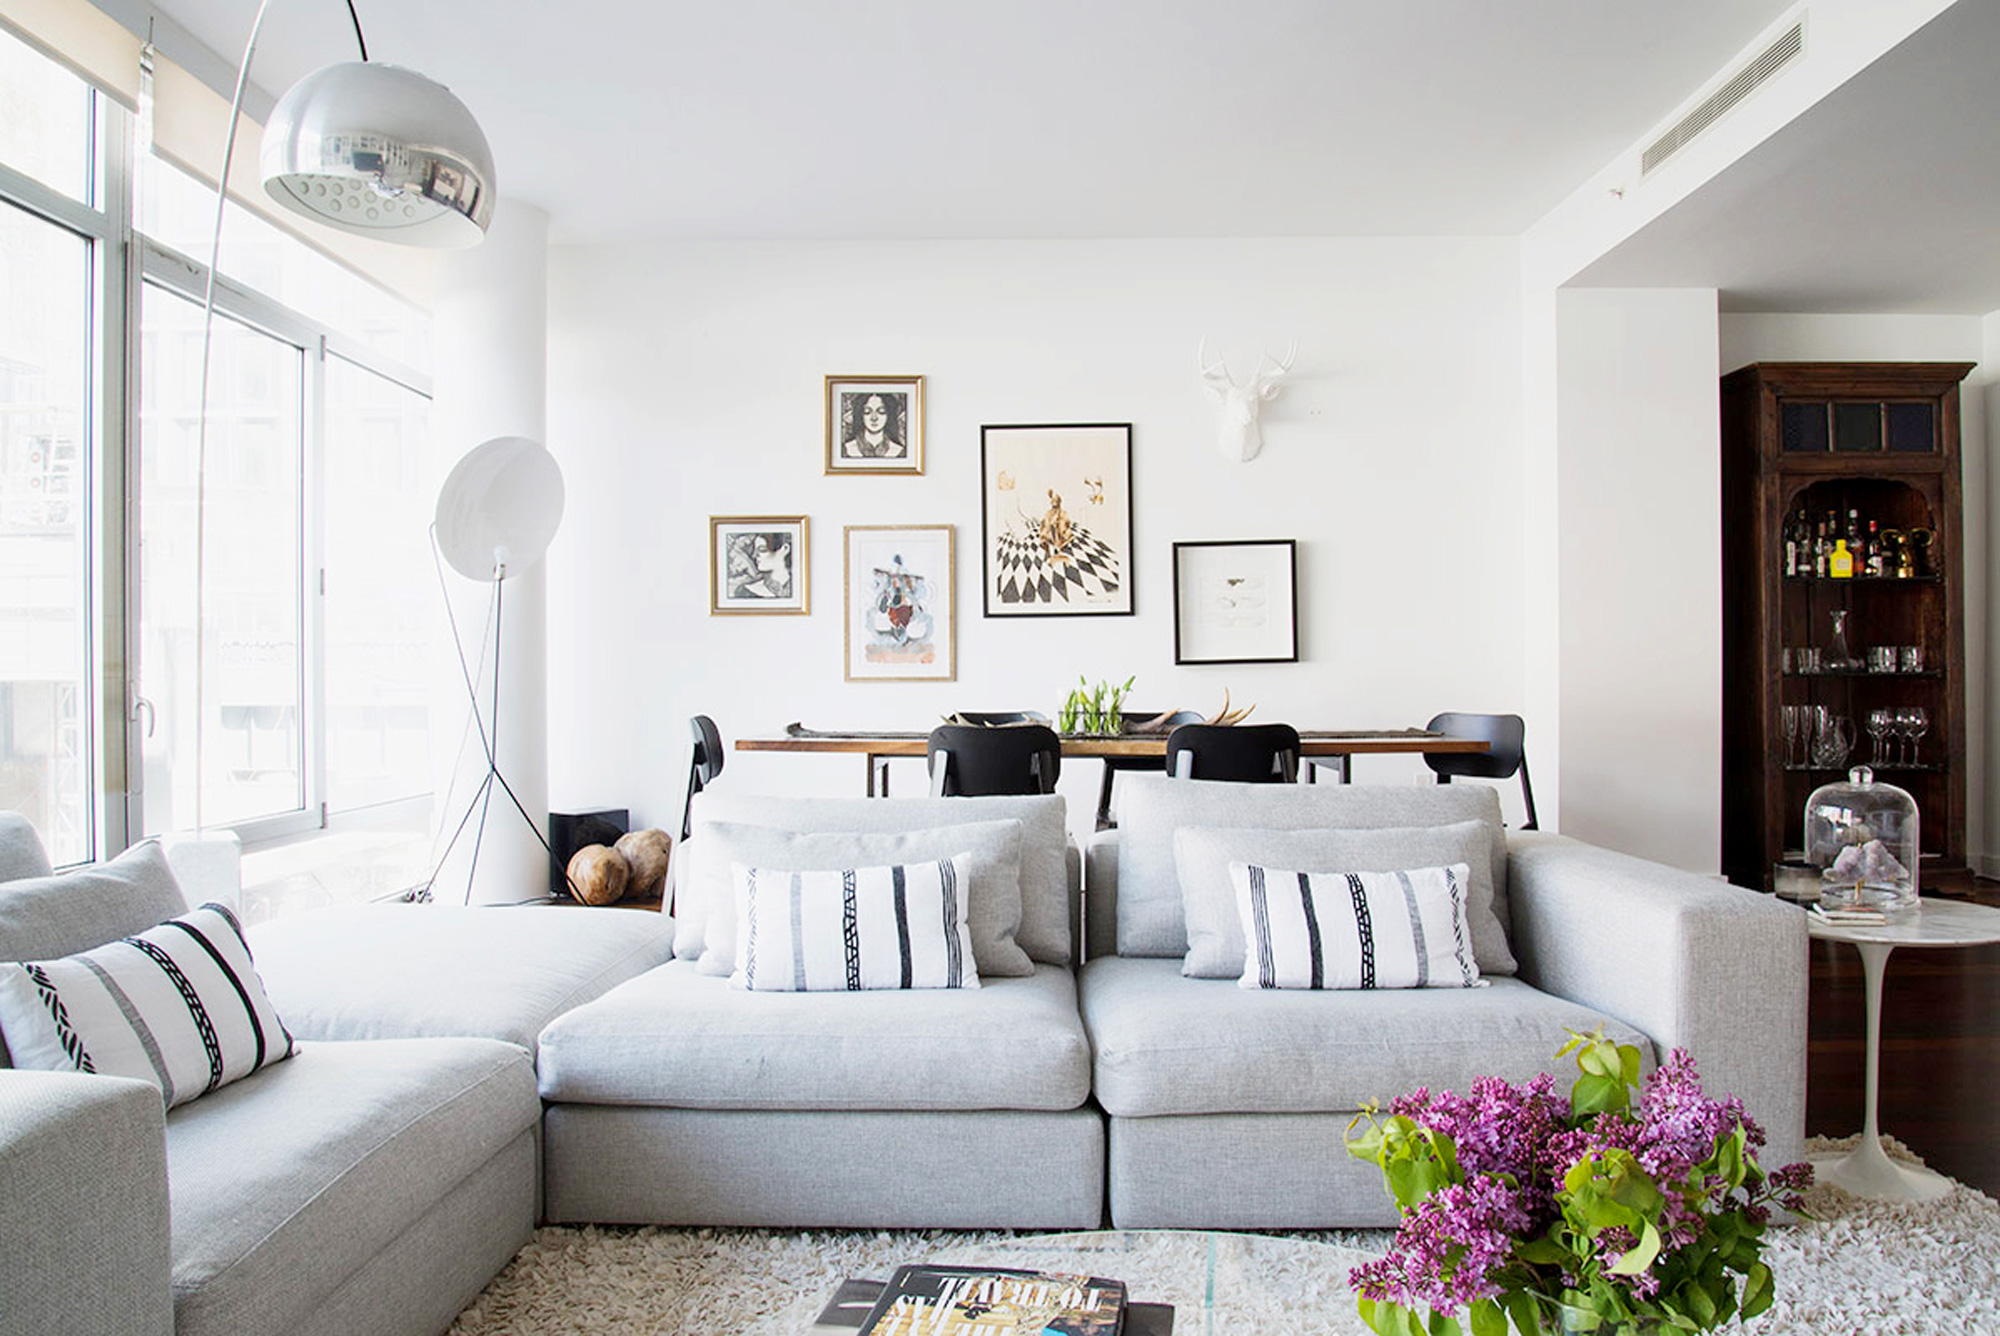 West Elm's top tips on decorating a small space